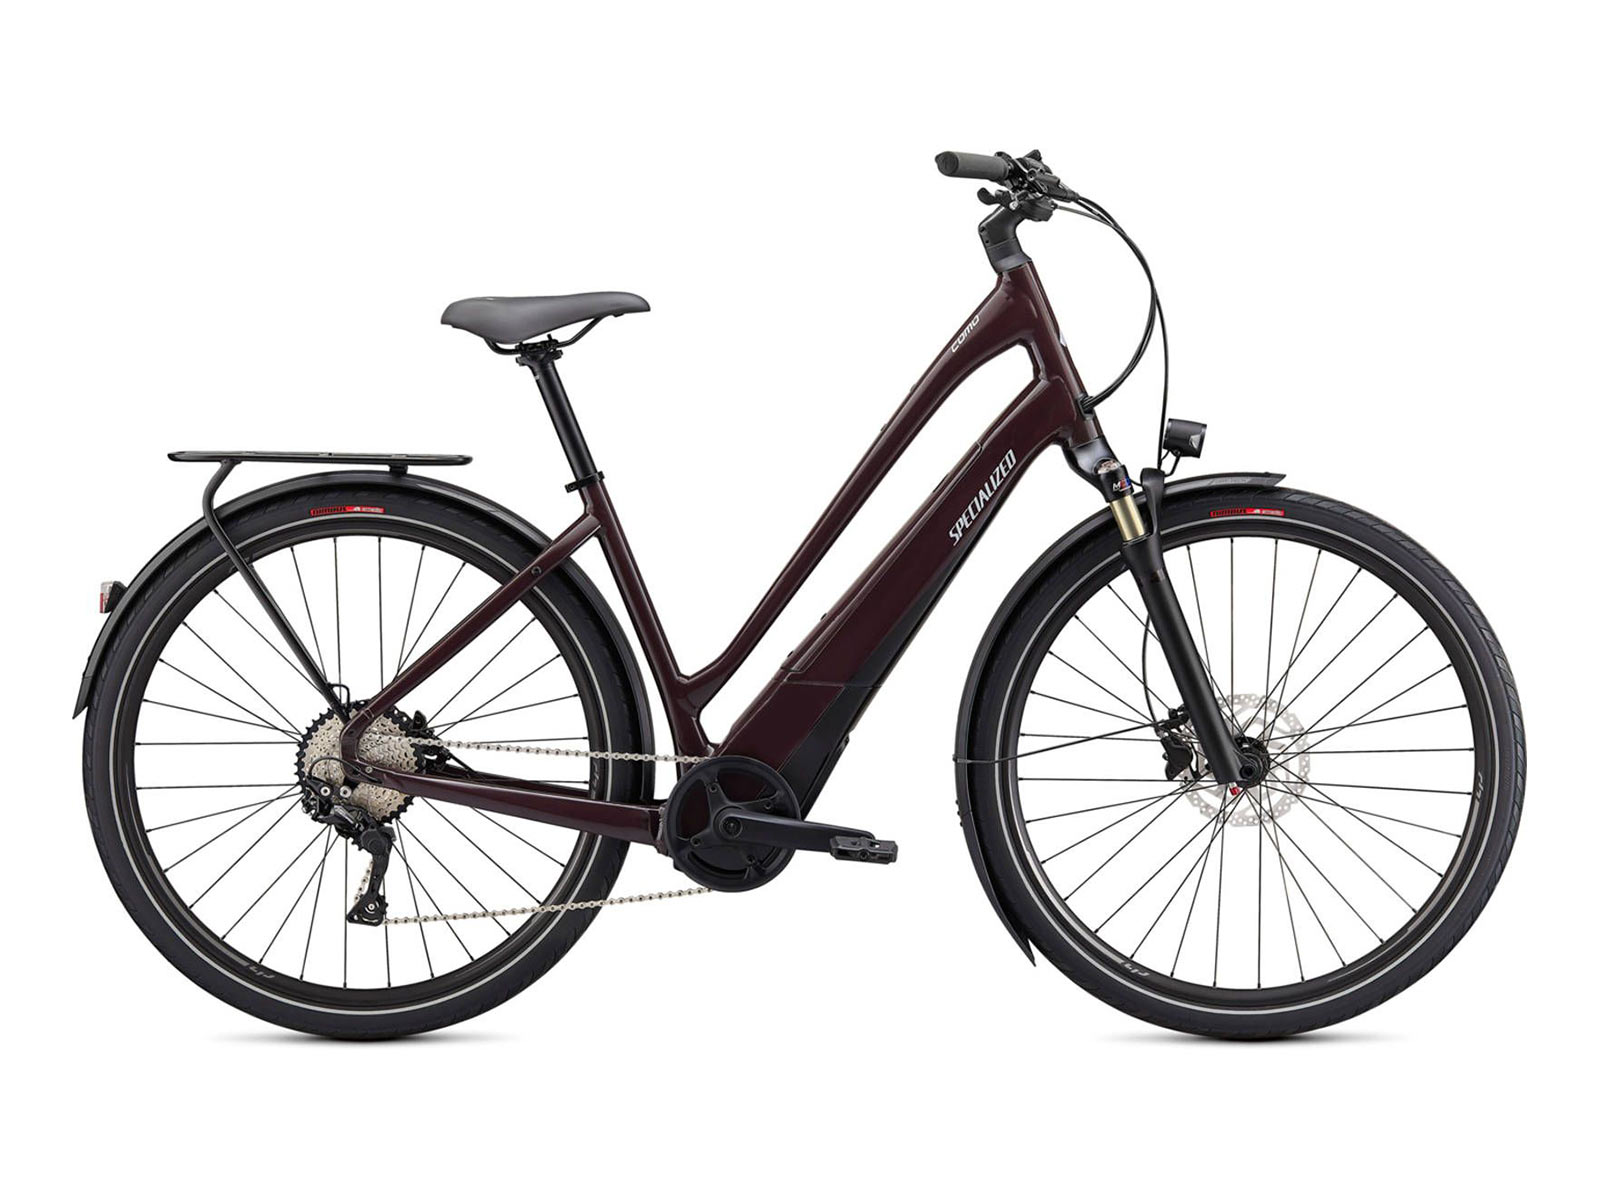 Specialized Turbo Como 4.0 700C - Low-Entry e-Bike - Cast Umber / Black / Chrome